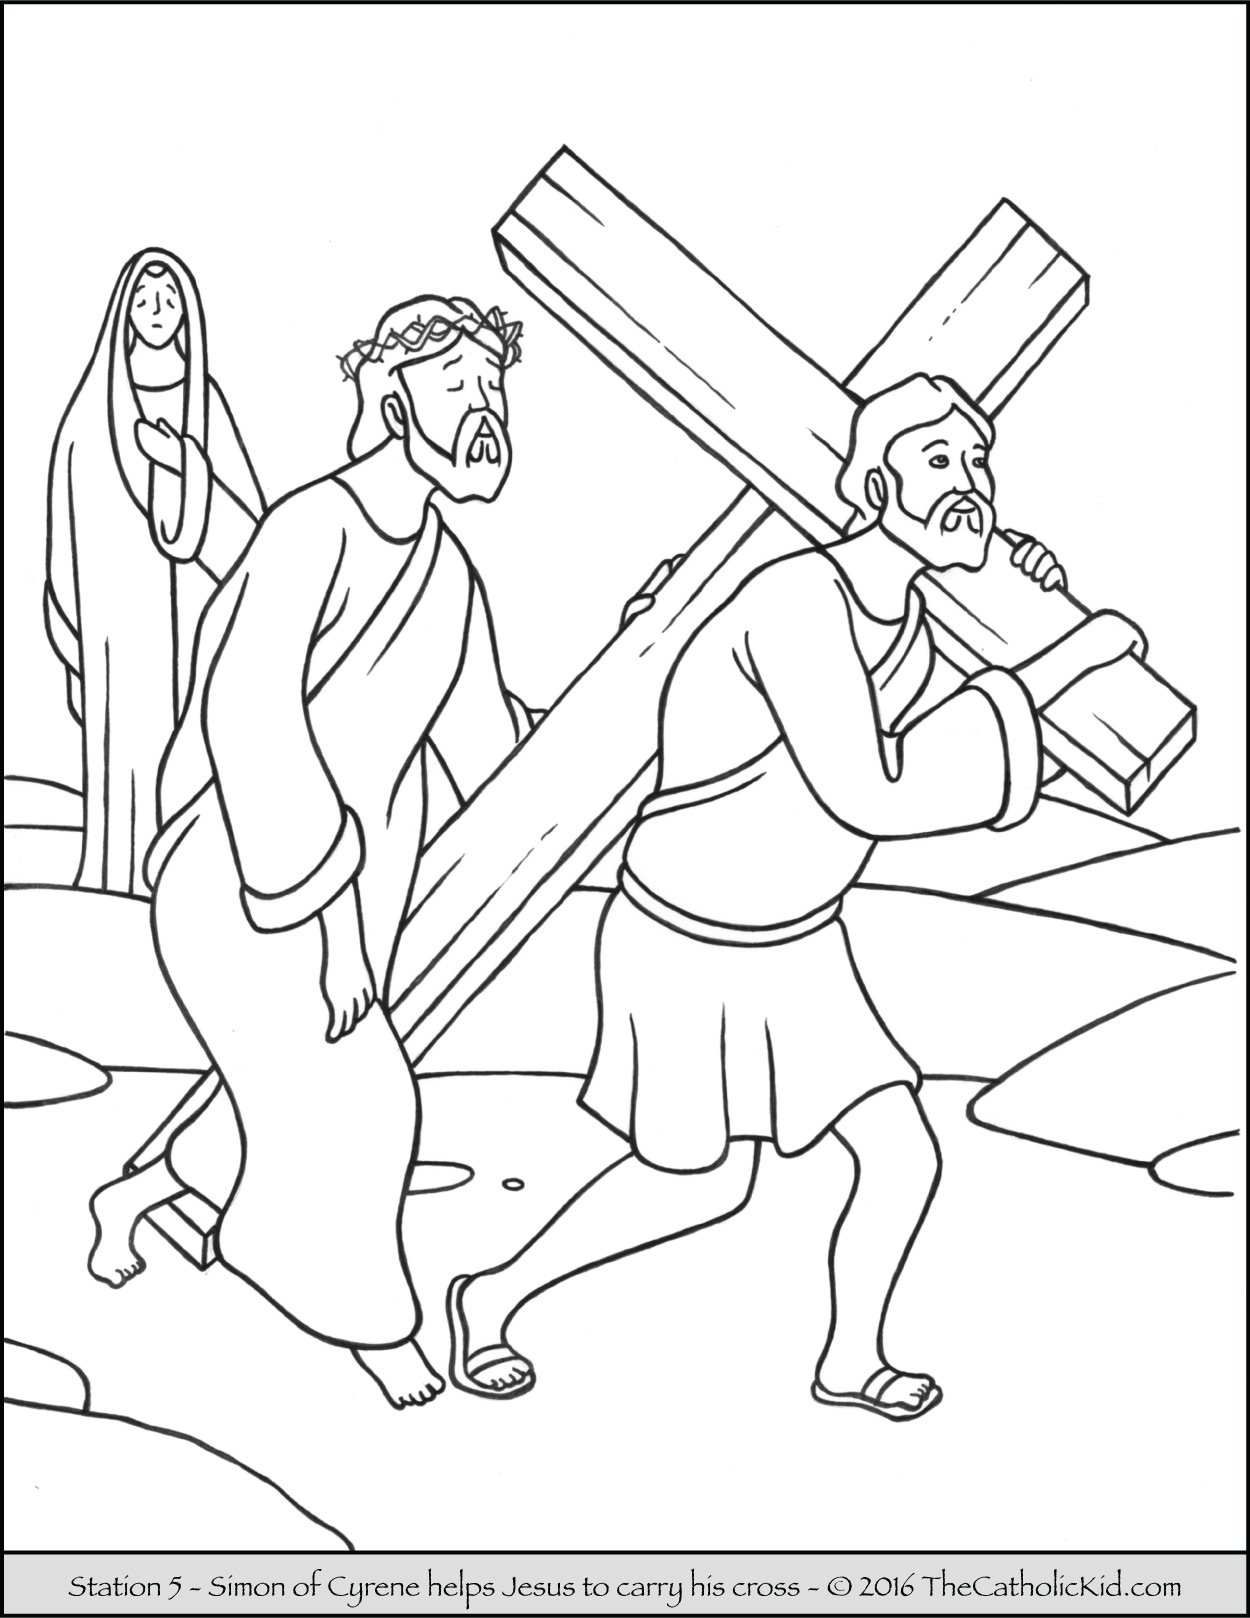 Stations Of The Cross Coloring Pages Awesome Stations Of The Cross Coloring Pages  The Catholic Kid Review